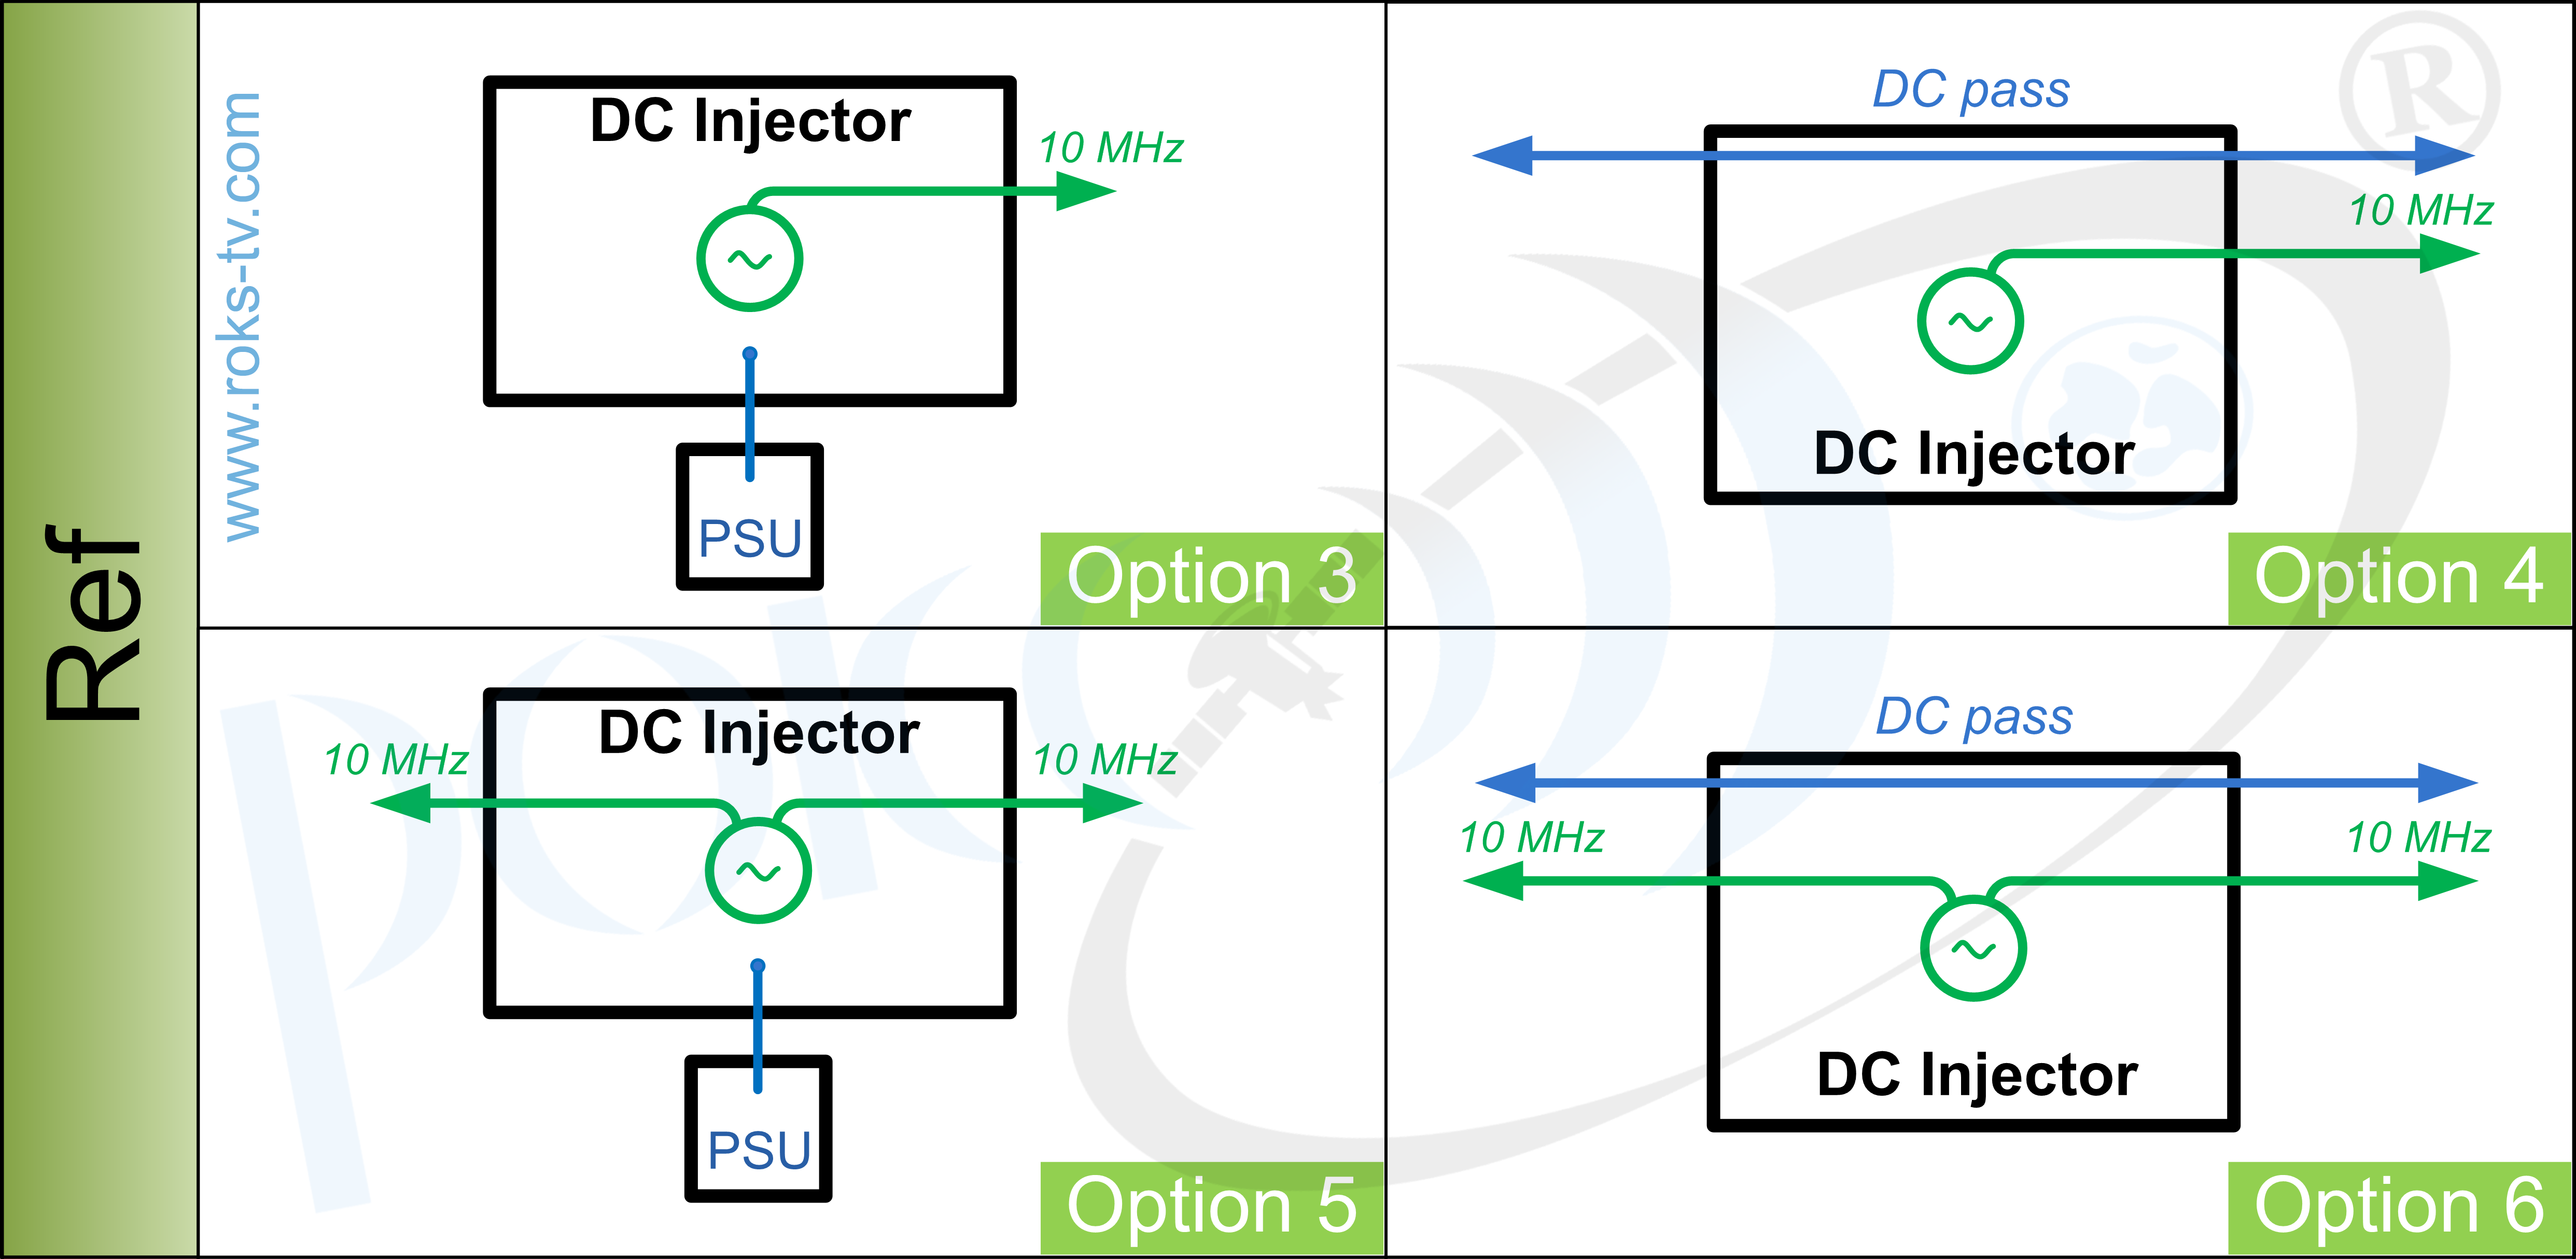 DC injector with Reference